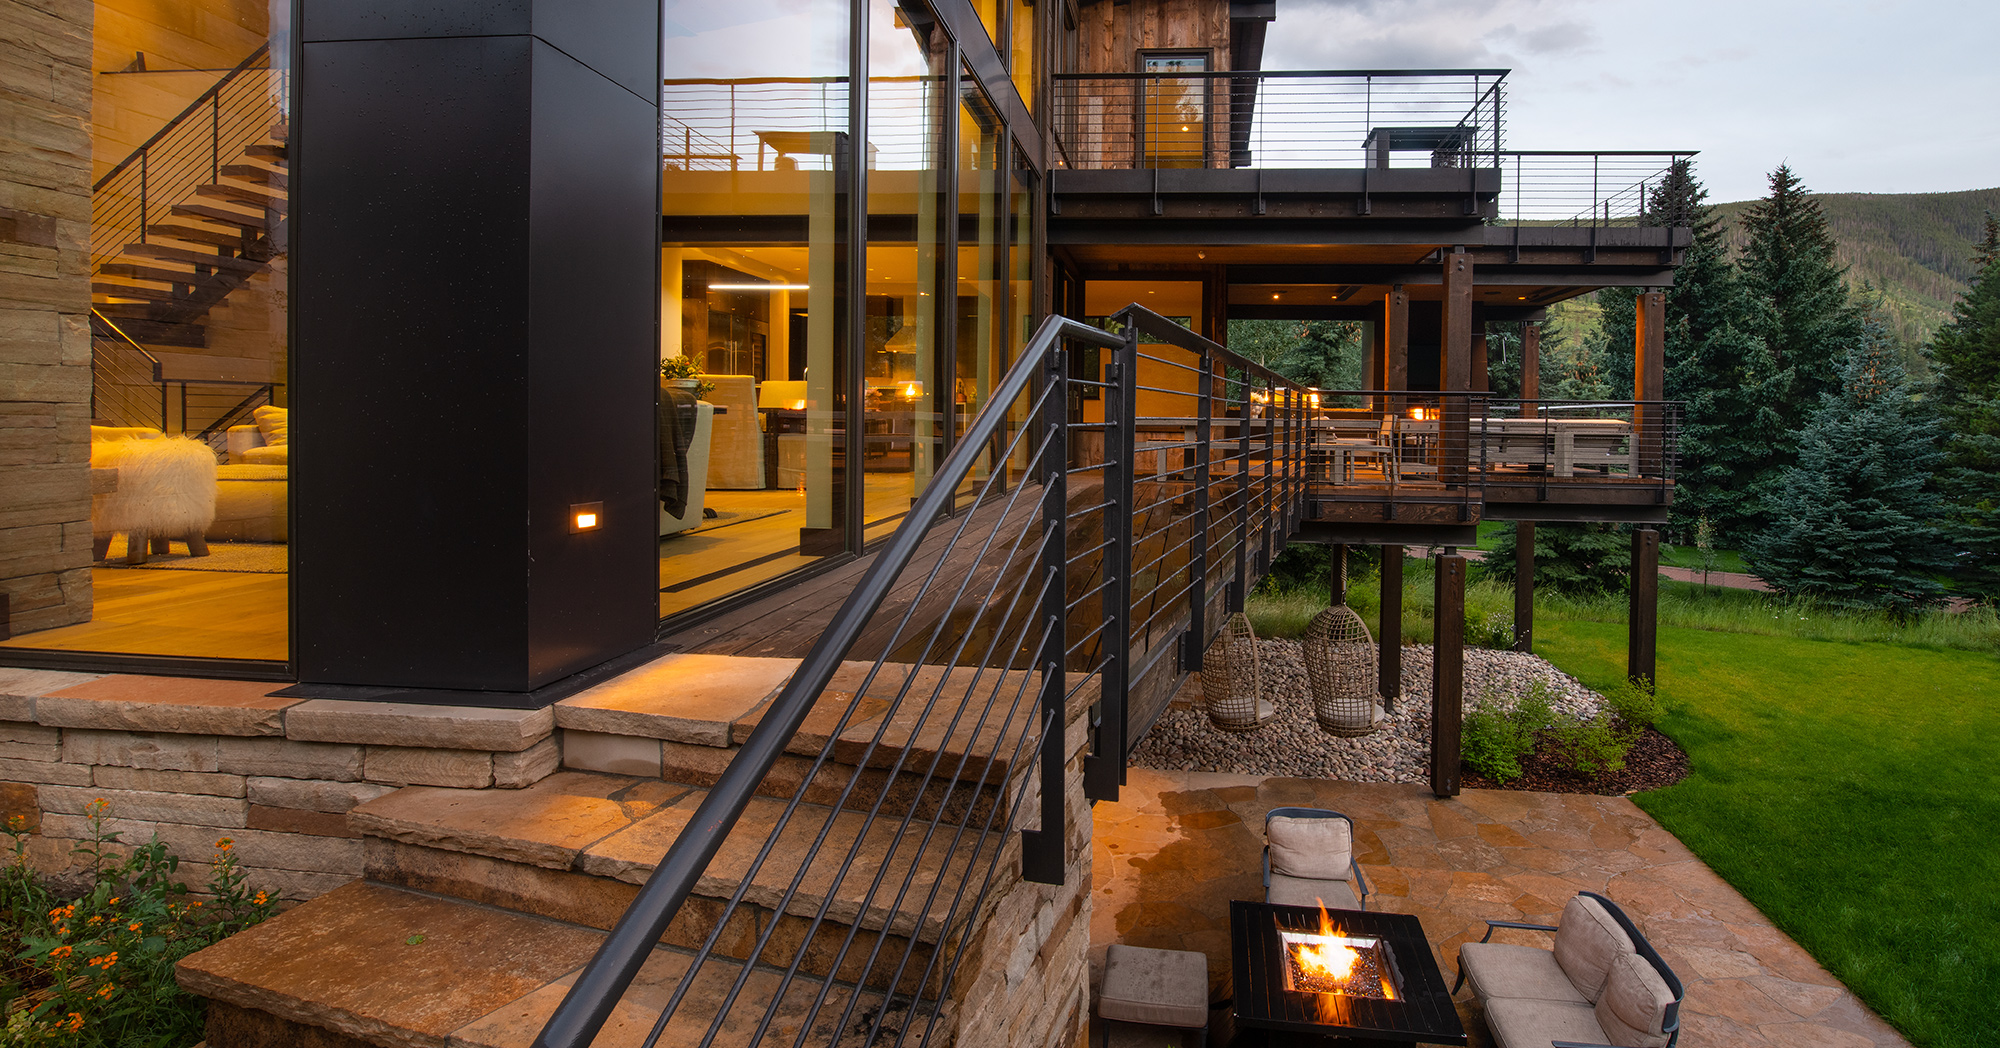 West Vail MountainContemporary Custom Deck Fire Pit